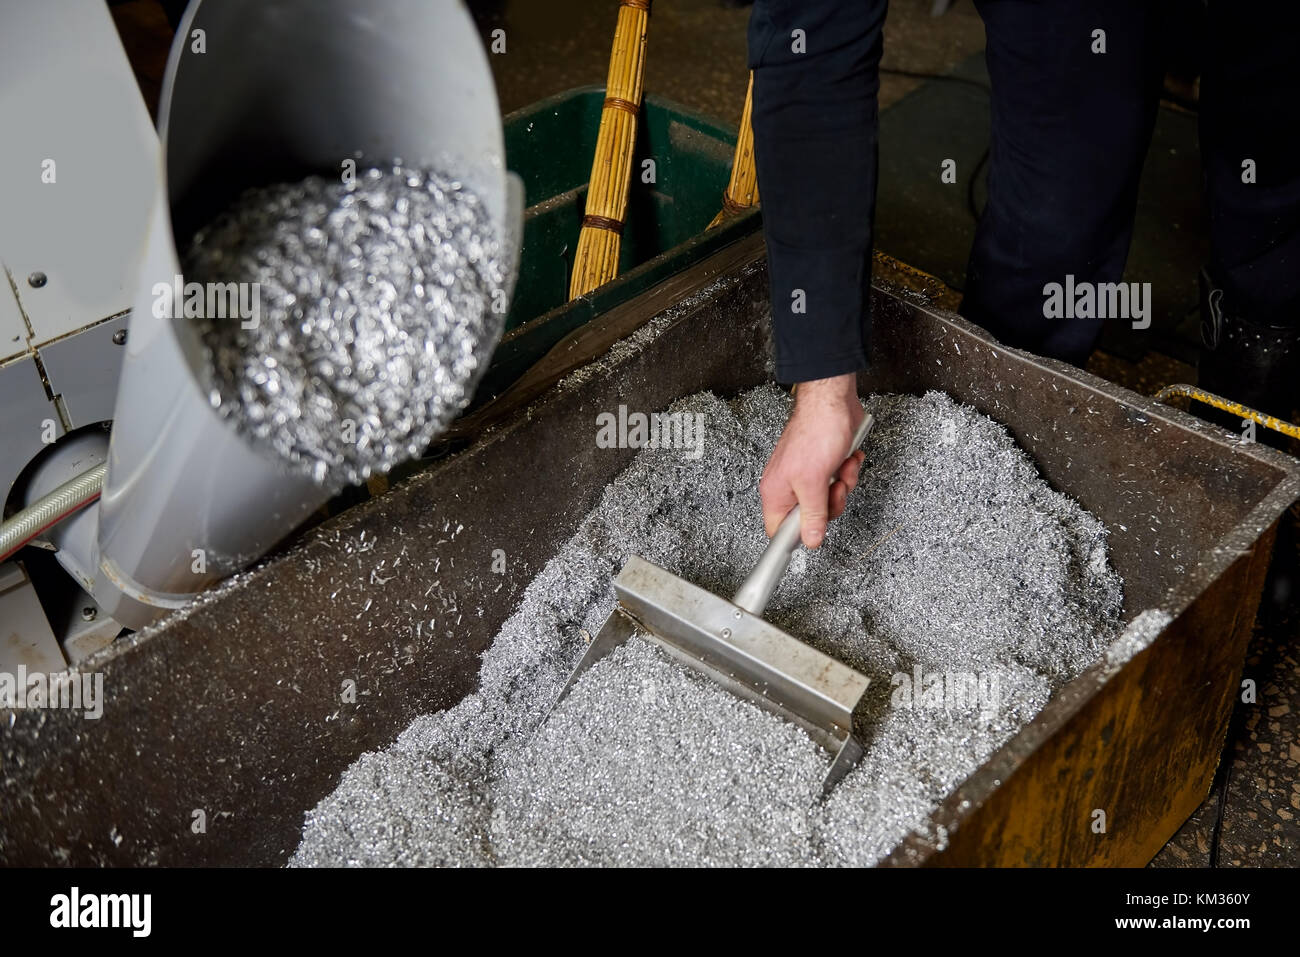 Grabing swarf from the container. Stock Photo